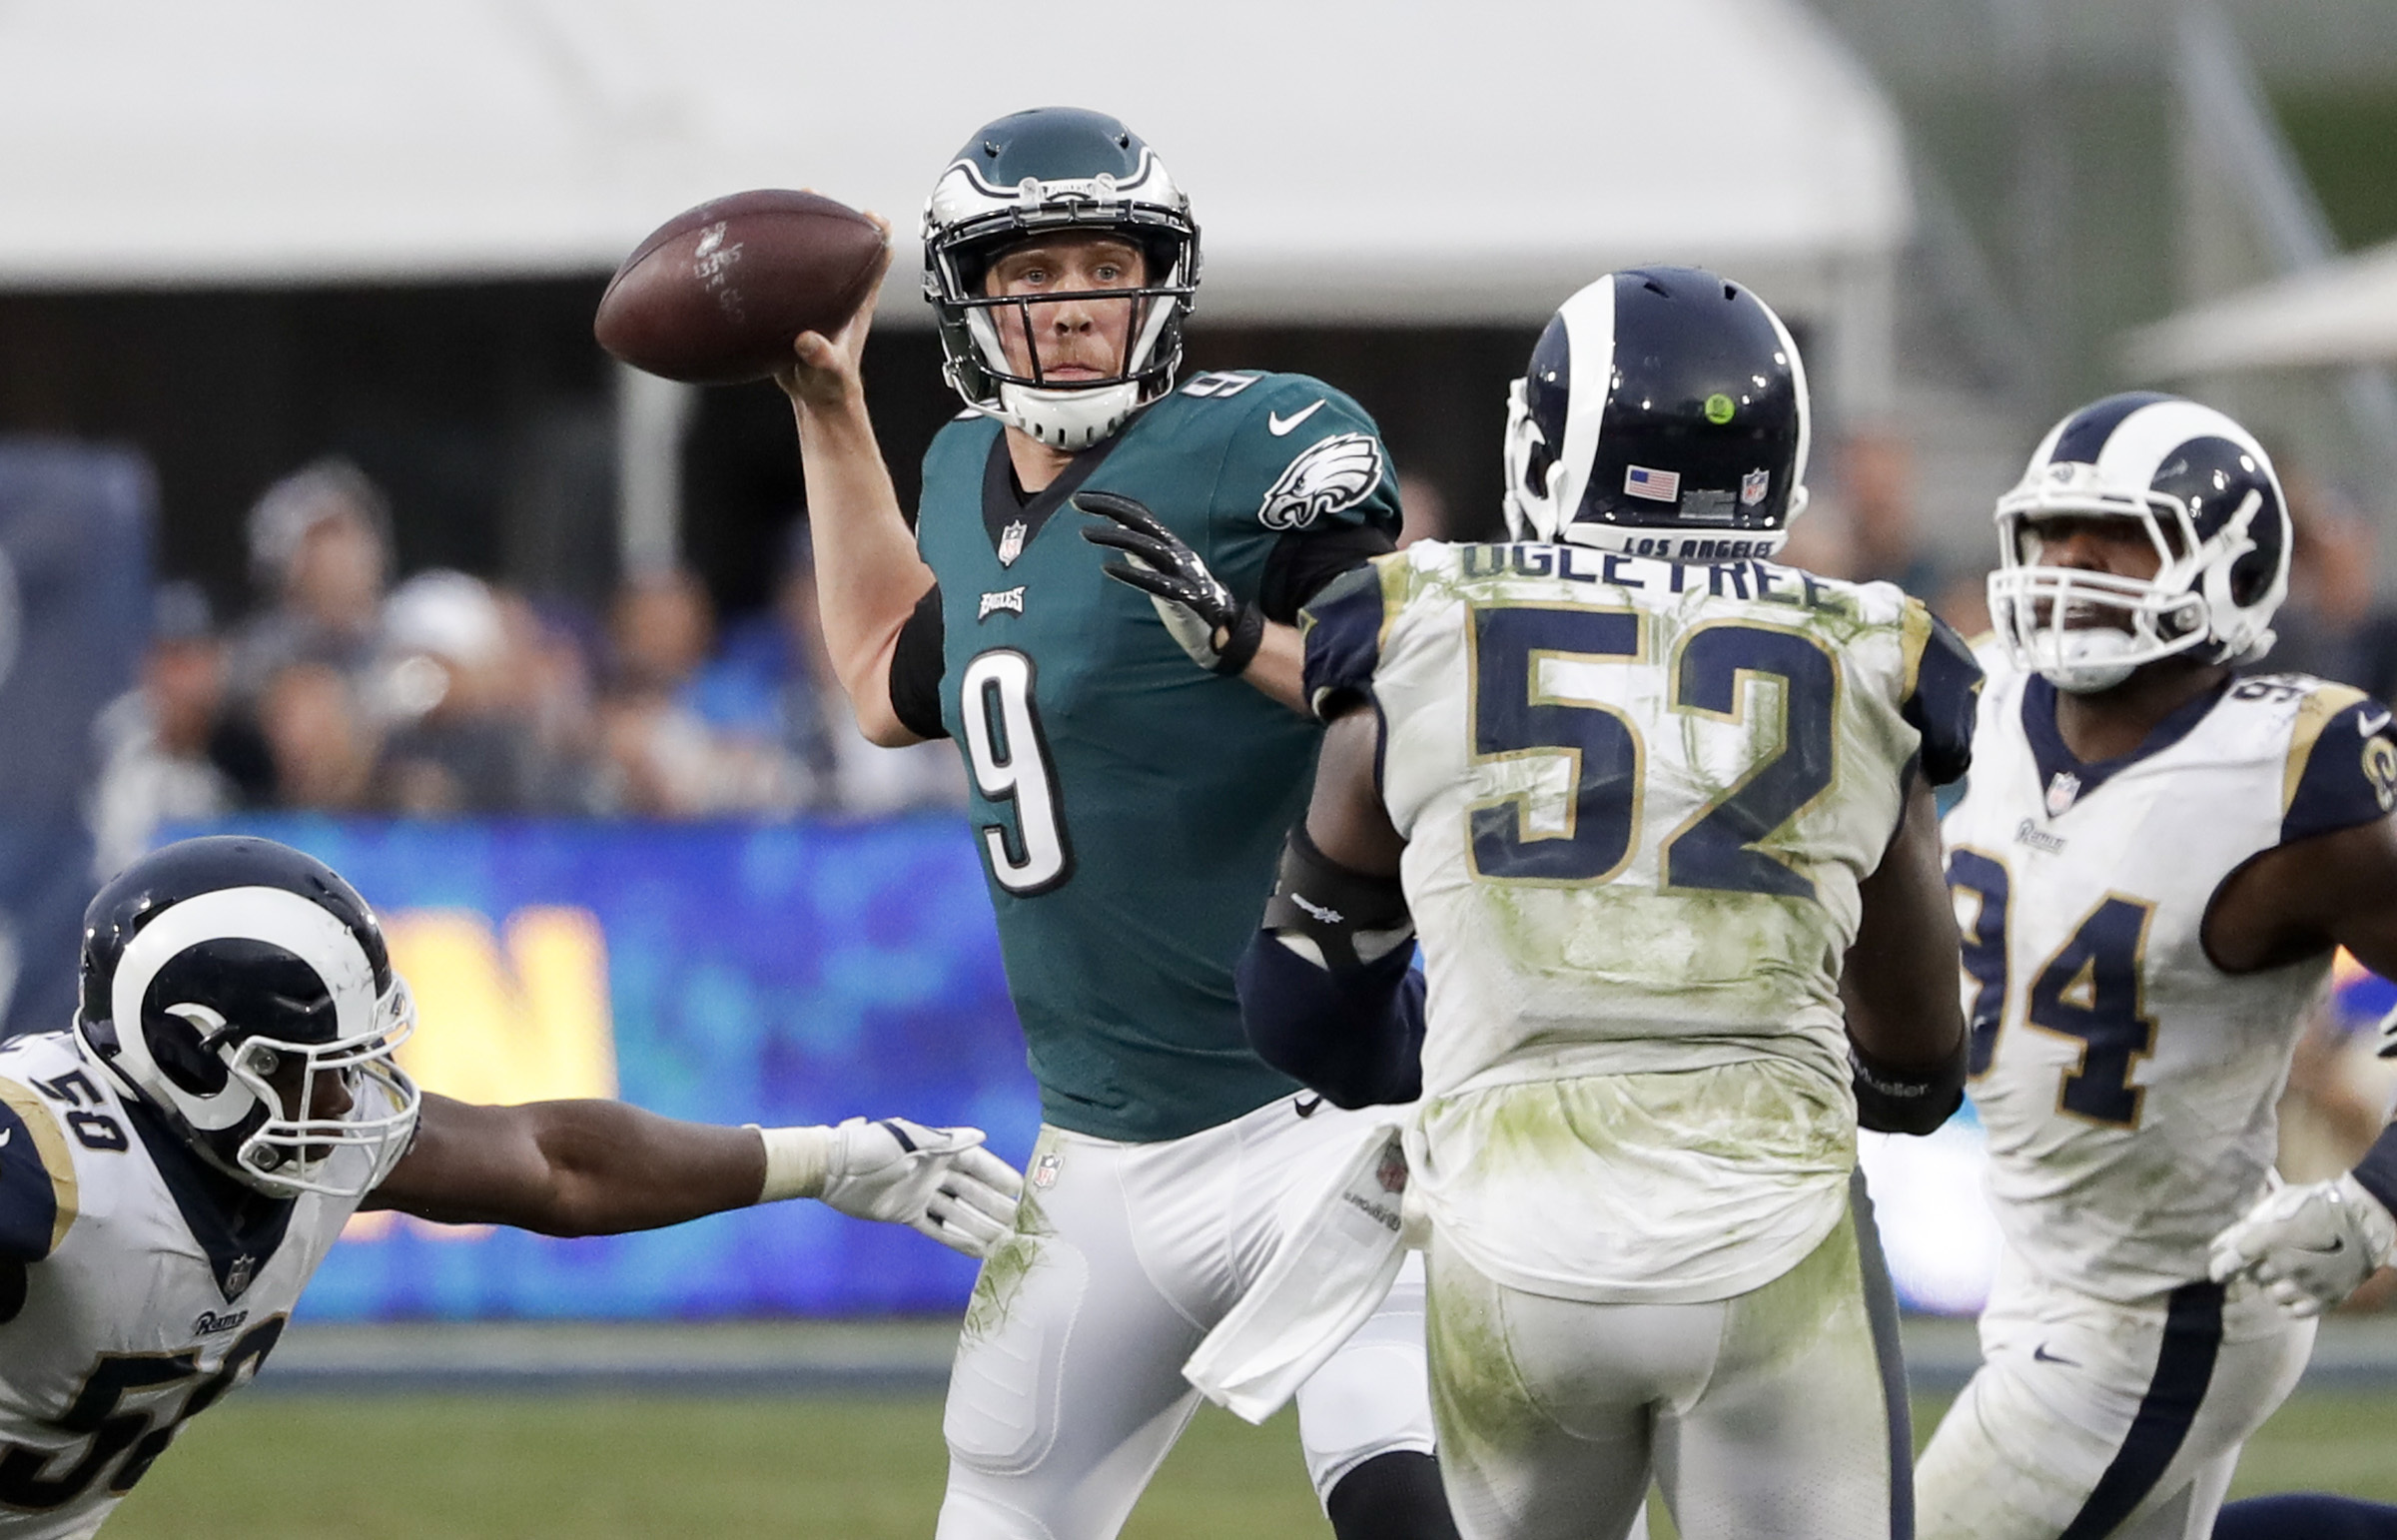 Eagles quarterback Nick Foles throws a pass against the Rams.